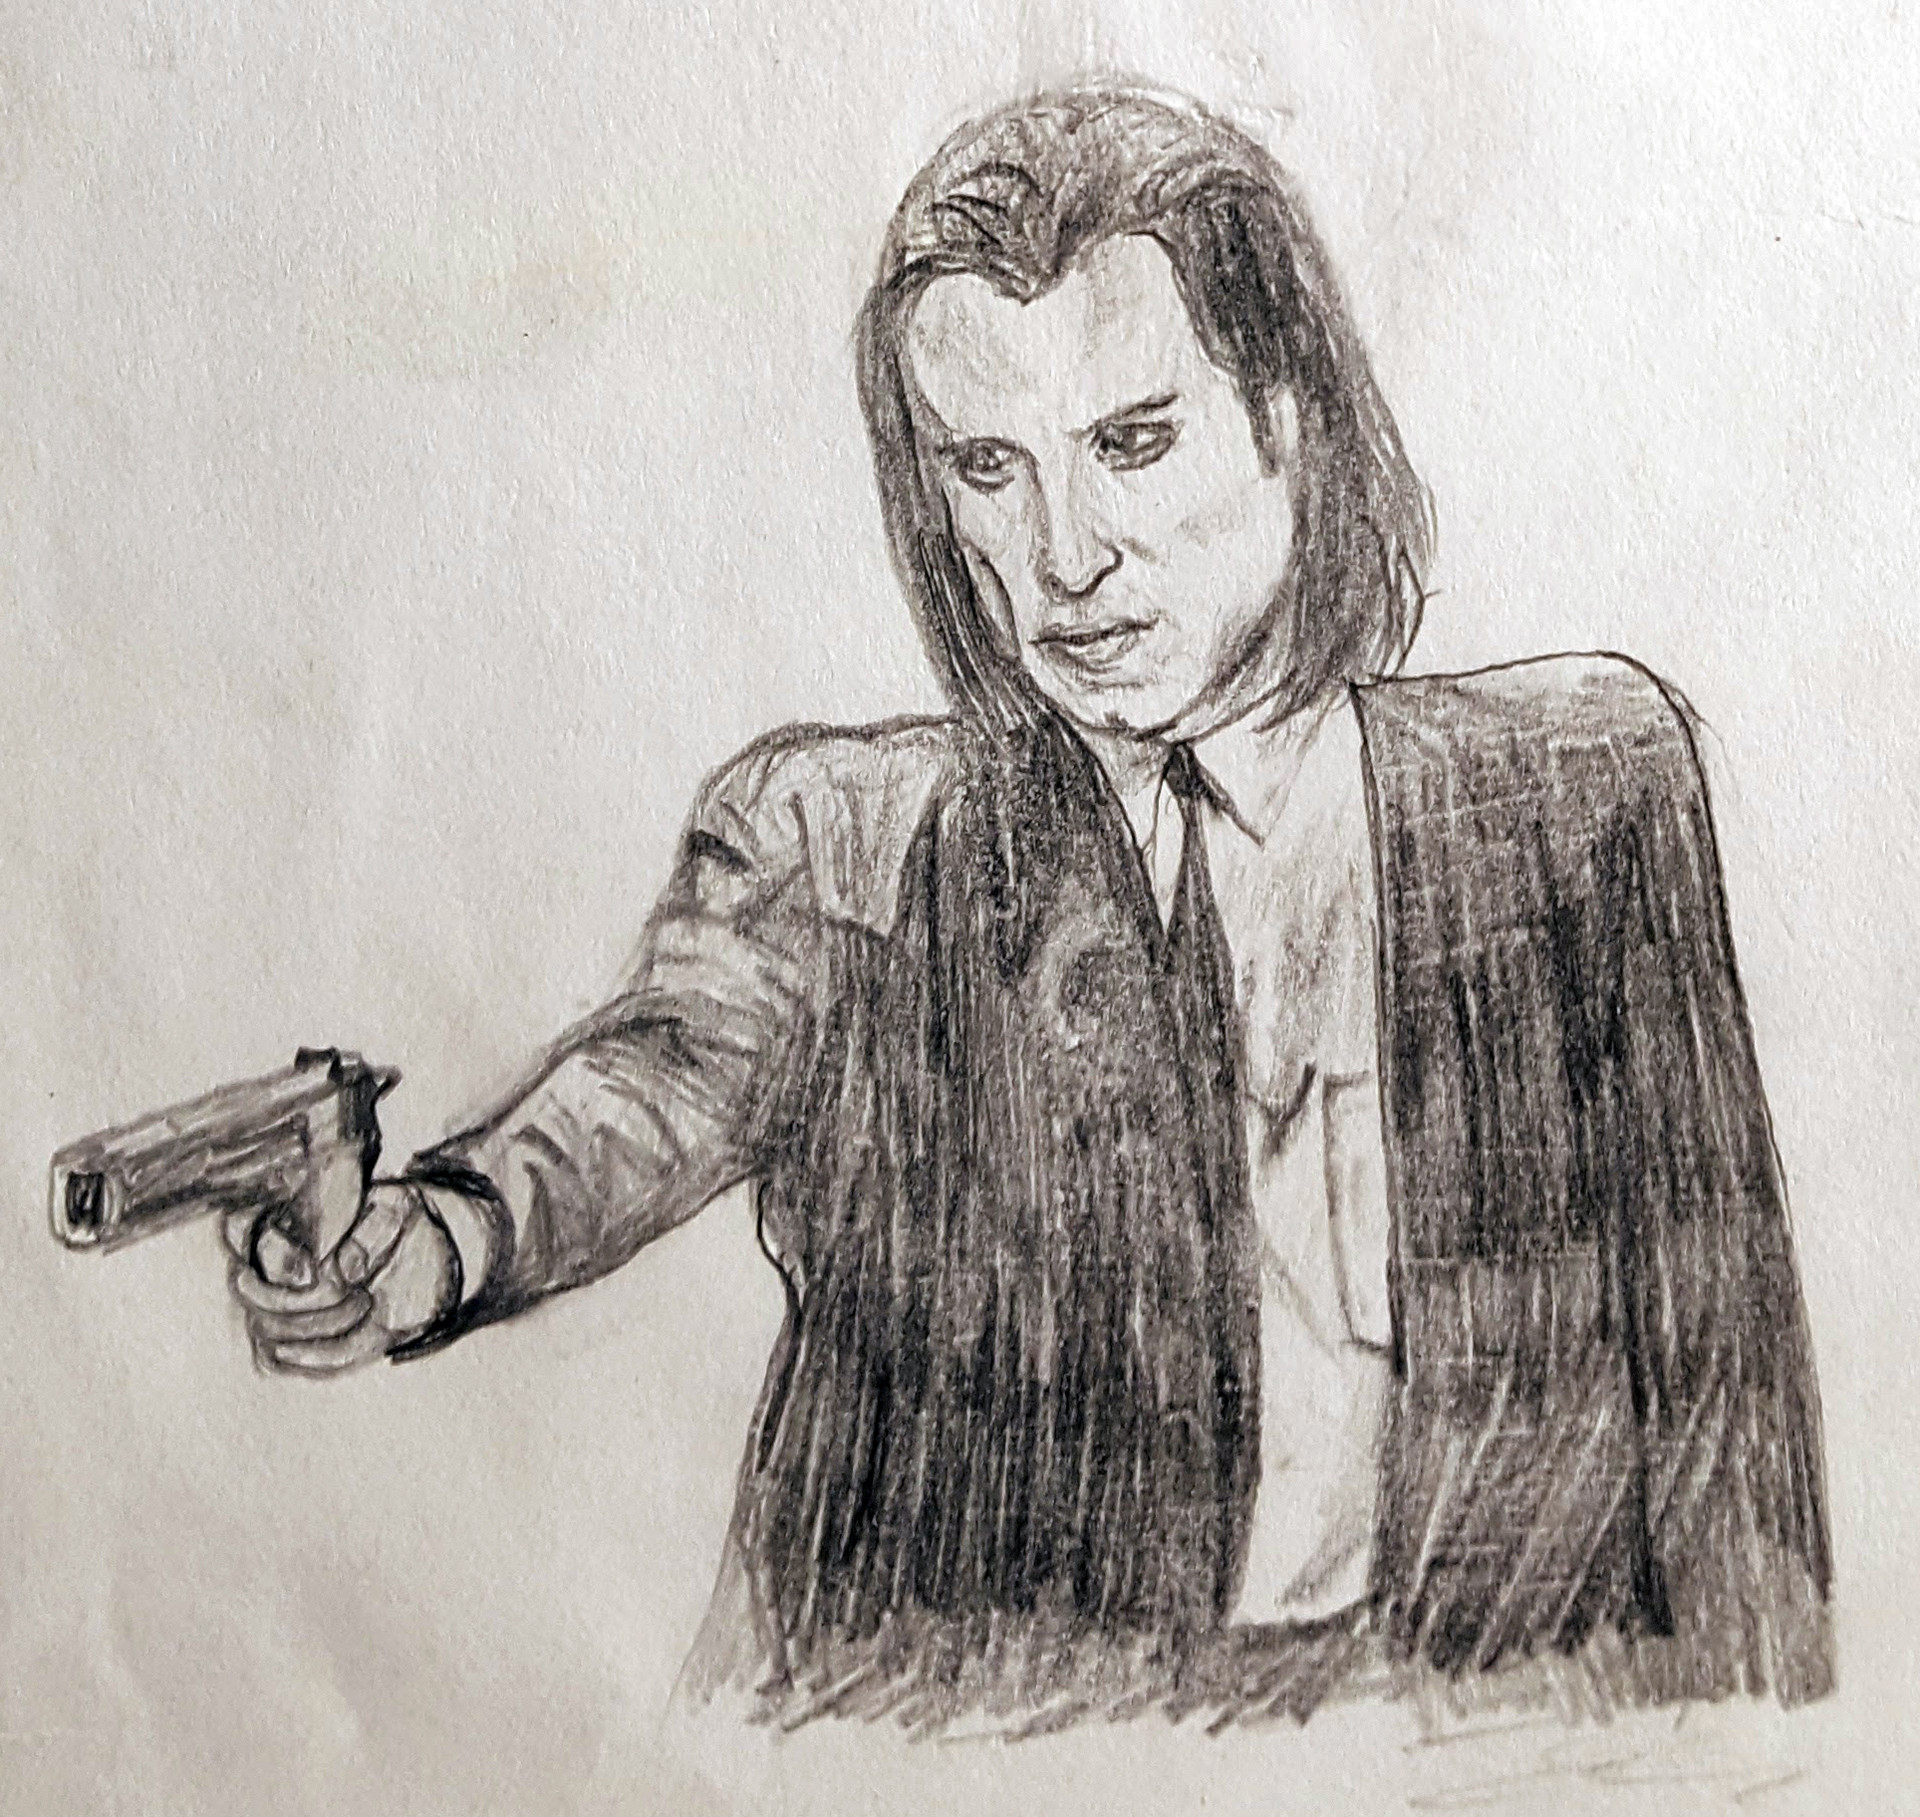 Benni amato pulp fiction vincent gun